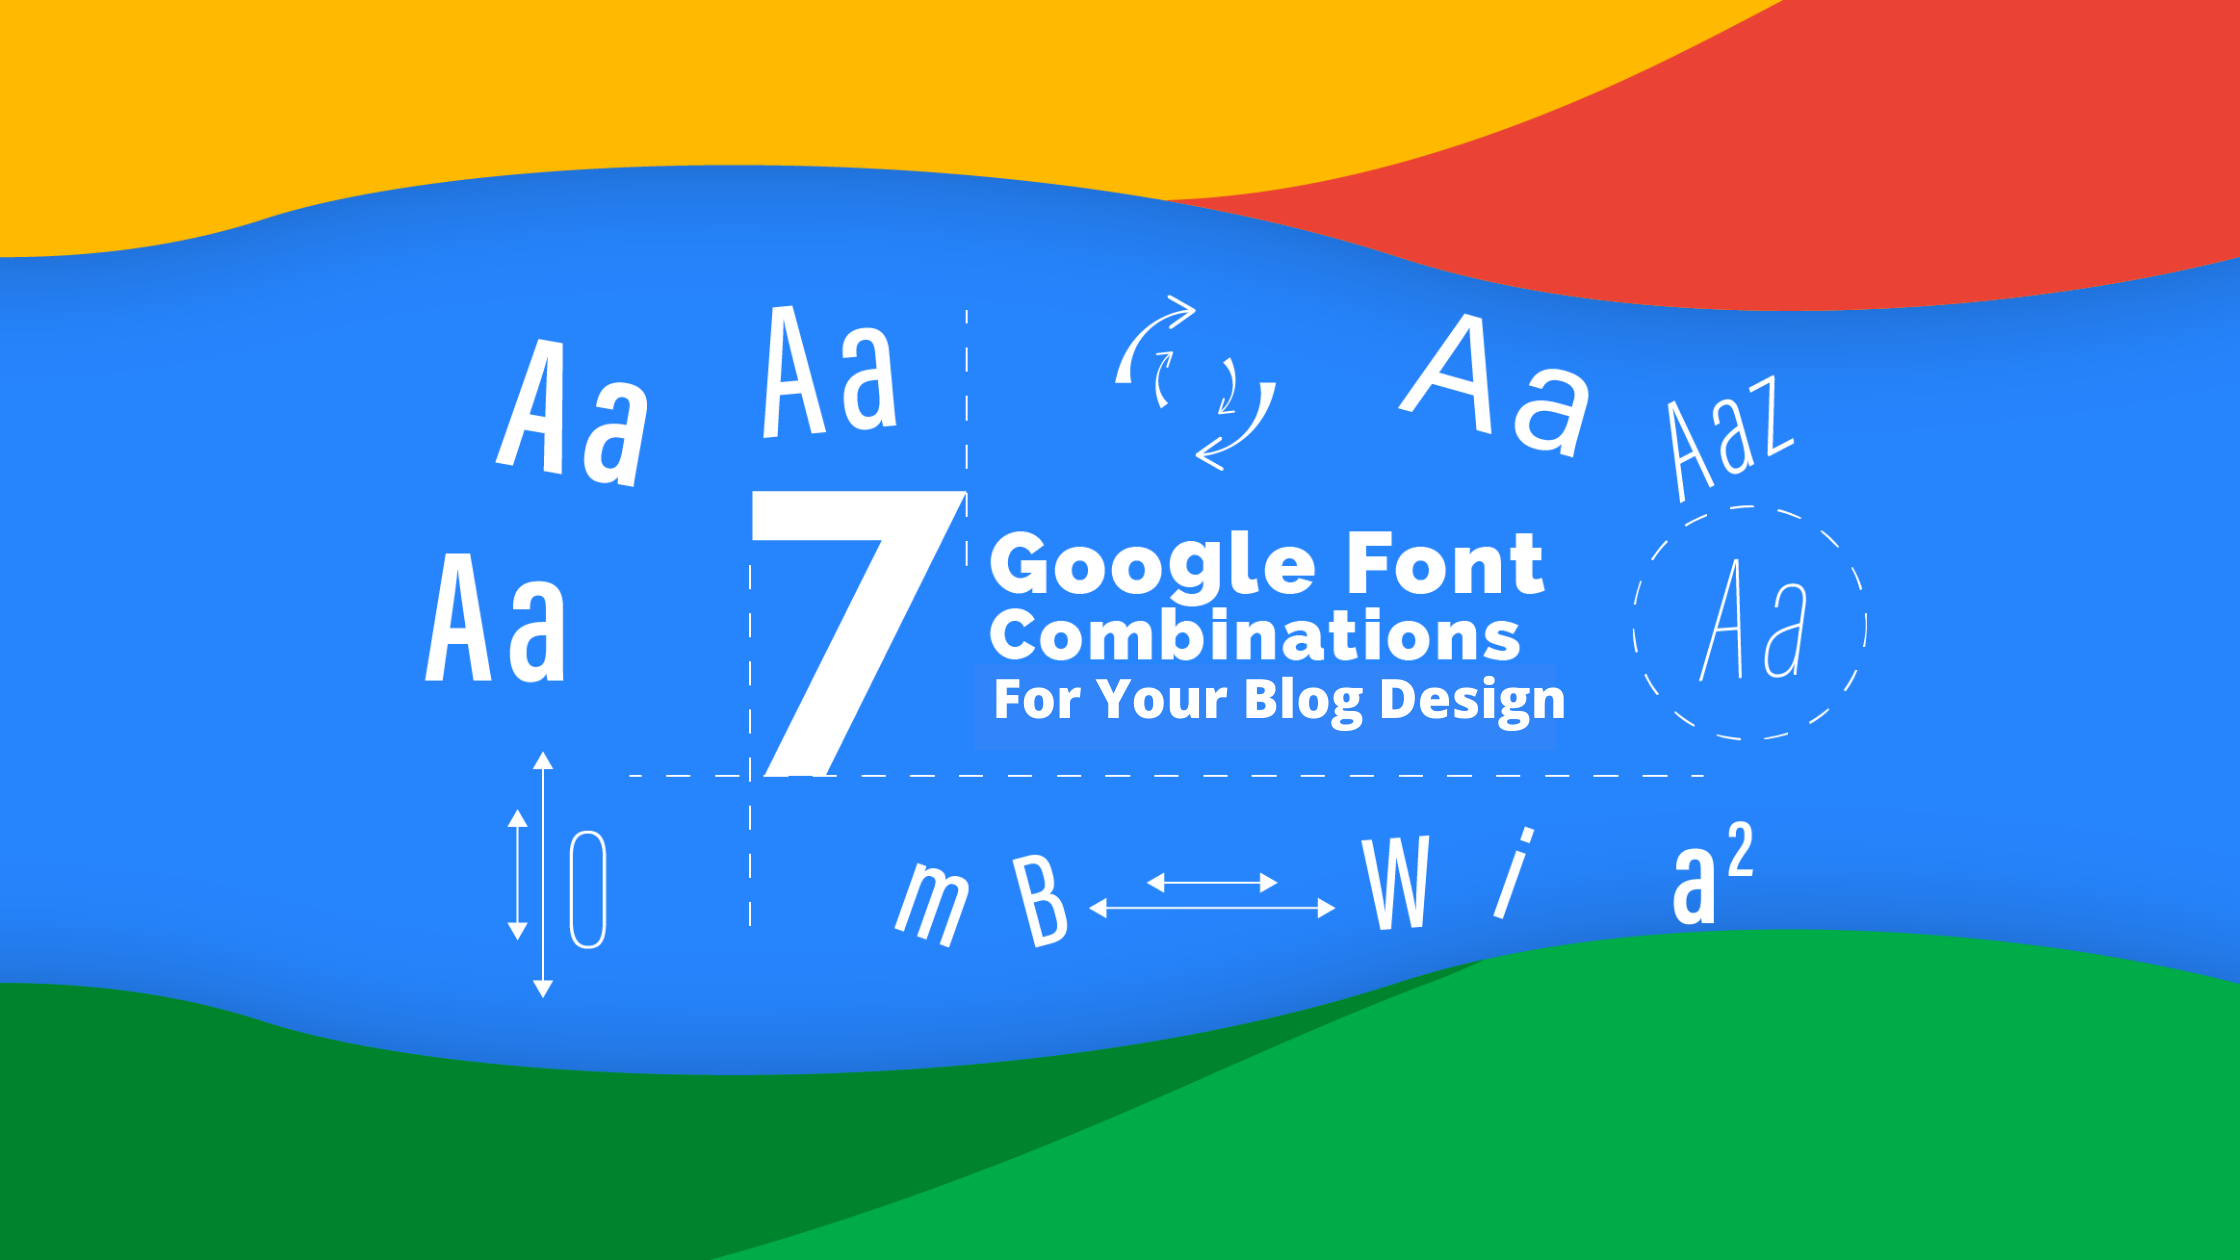 7 Google Font Combinations For Your Blog Design